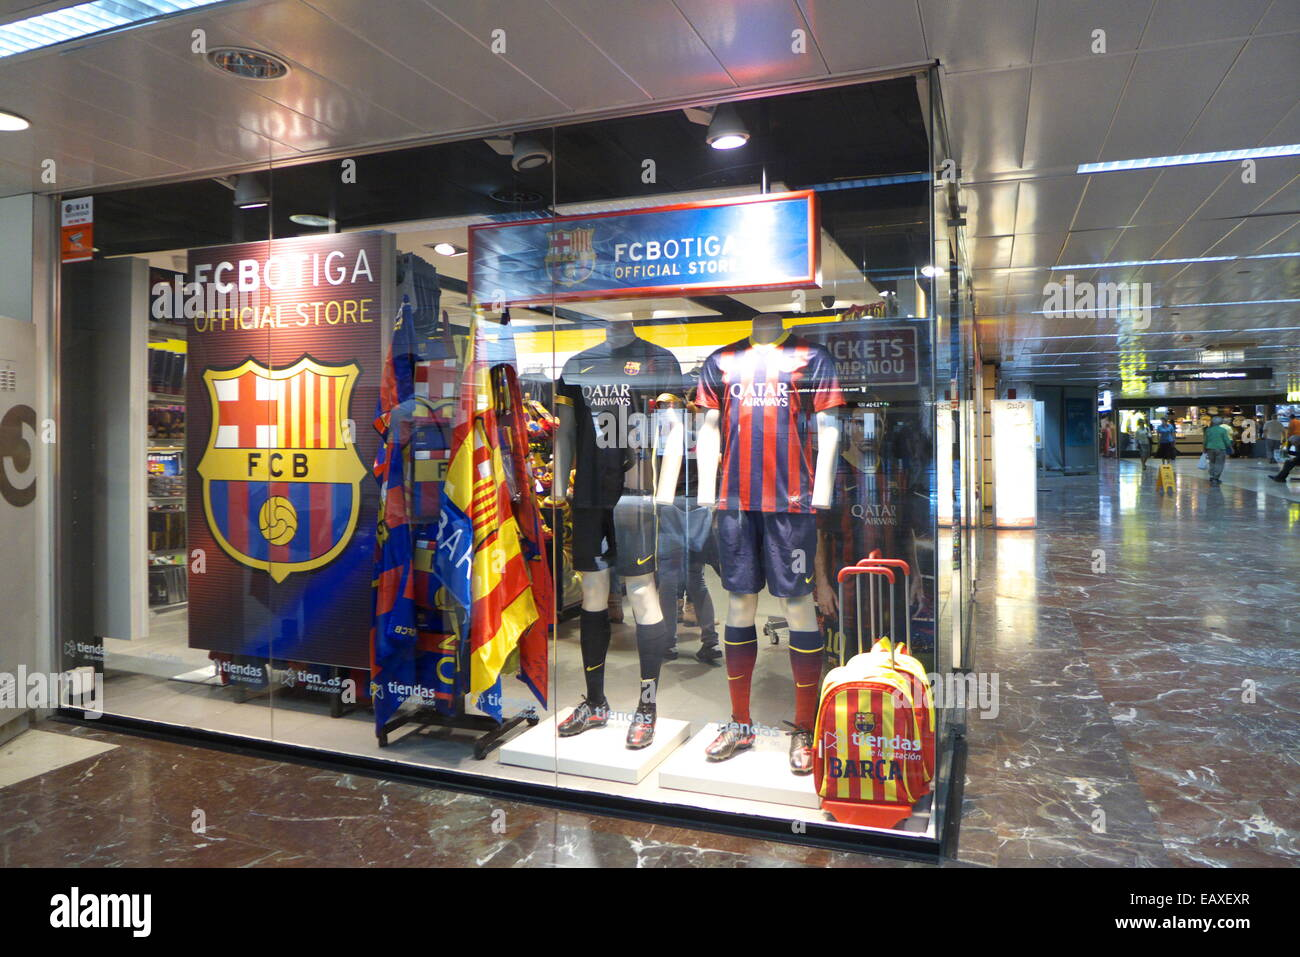 spain catalonia barcelona fc barcelona fan club souvenirs shop stock photo royalty free image. Black Bedroom Furniture Sets. Home Design Ideas